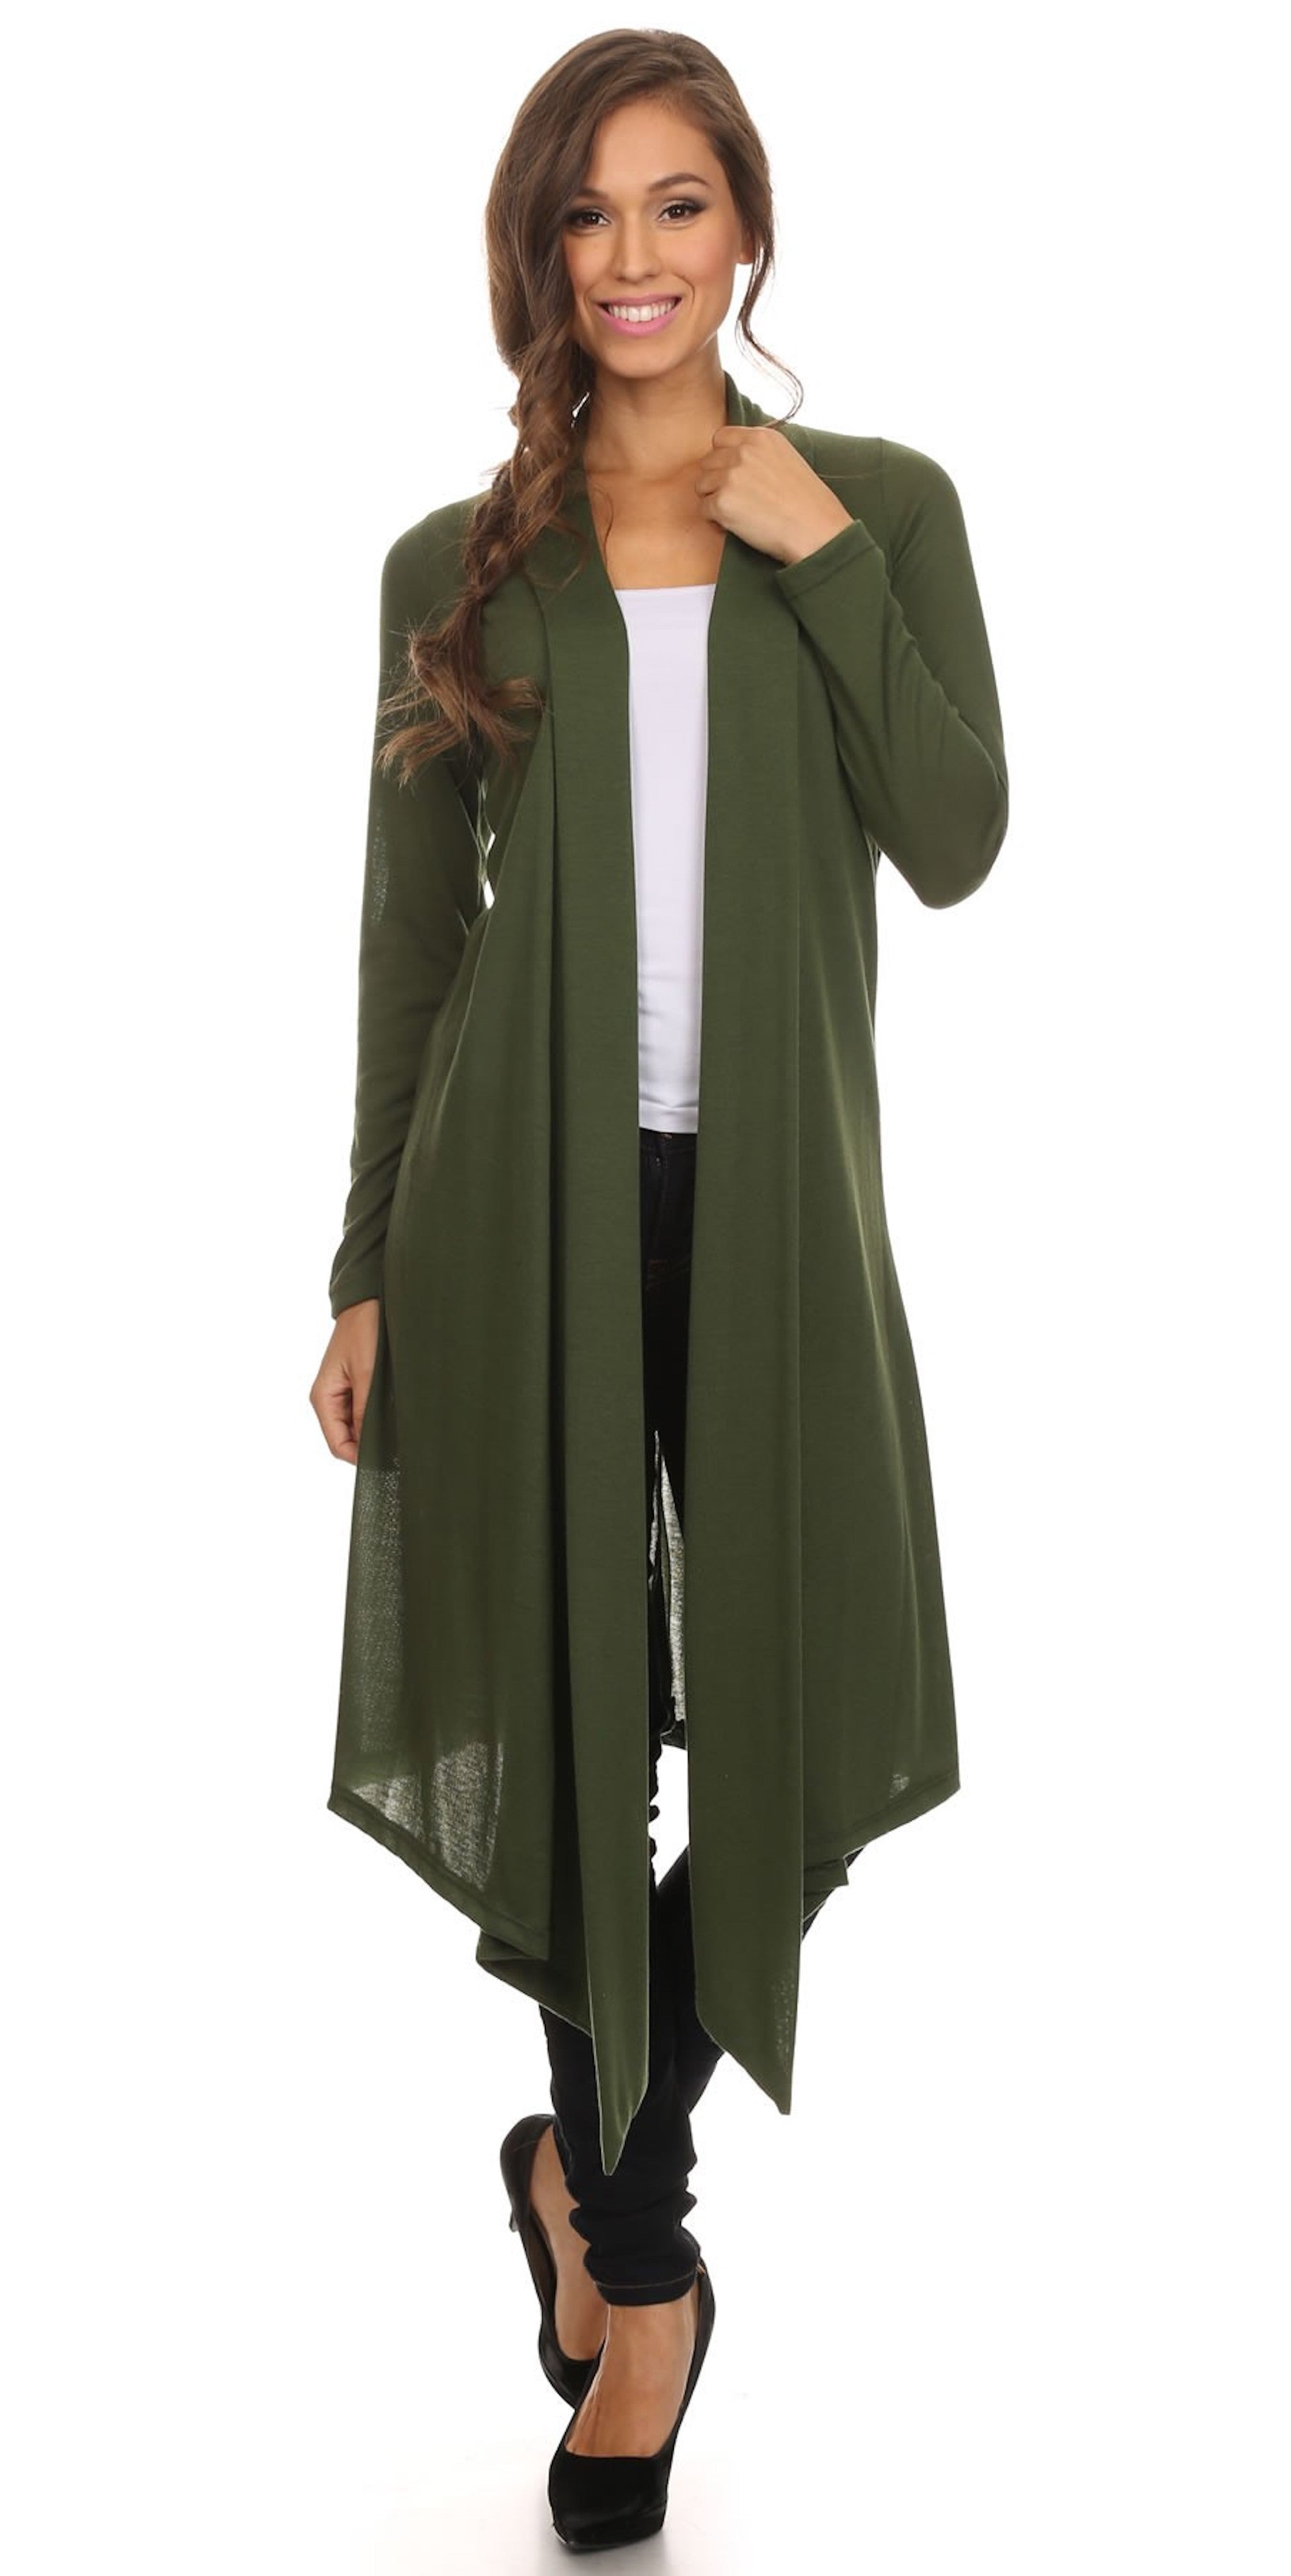 long olive cardigan jacket cover up fashion clothing woman trending style